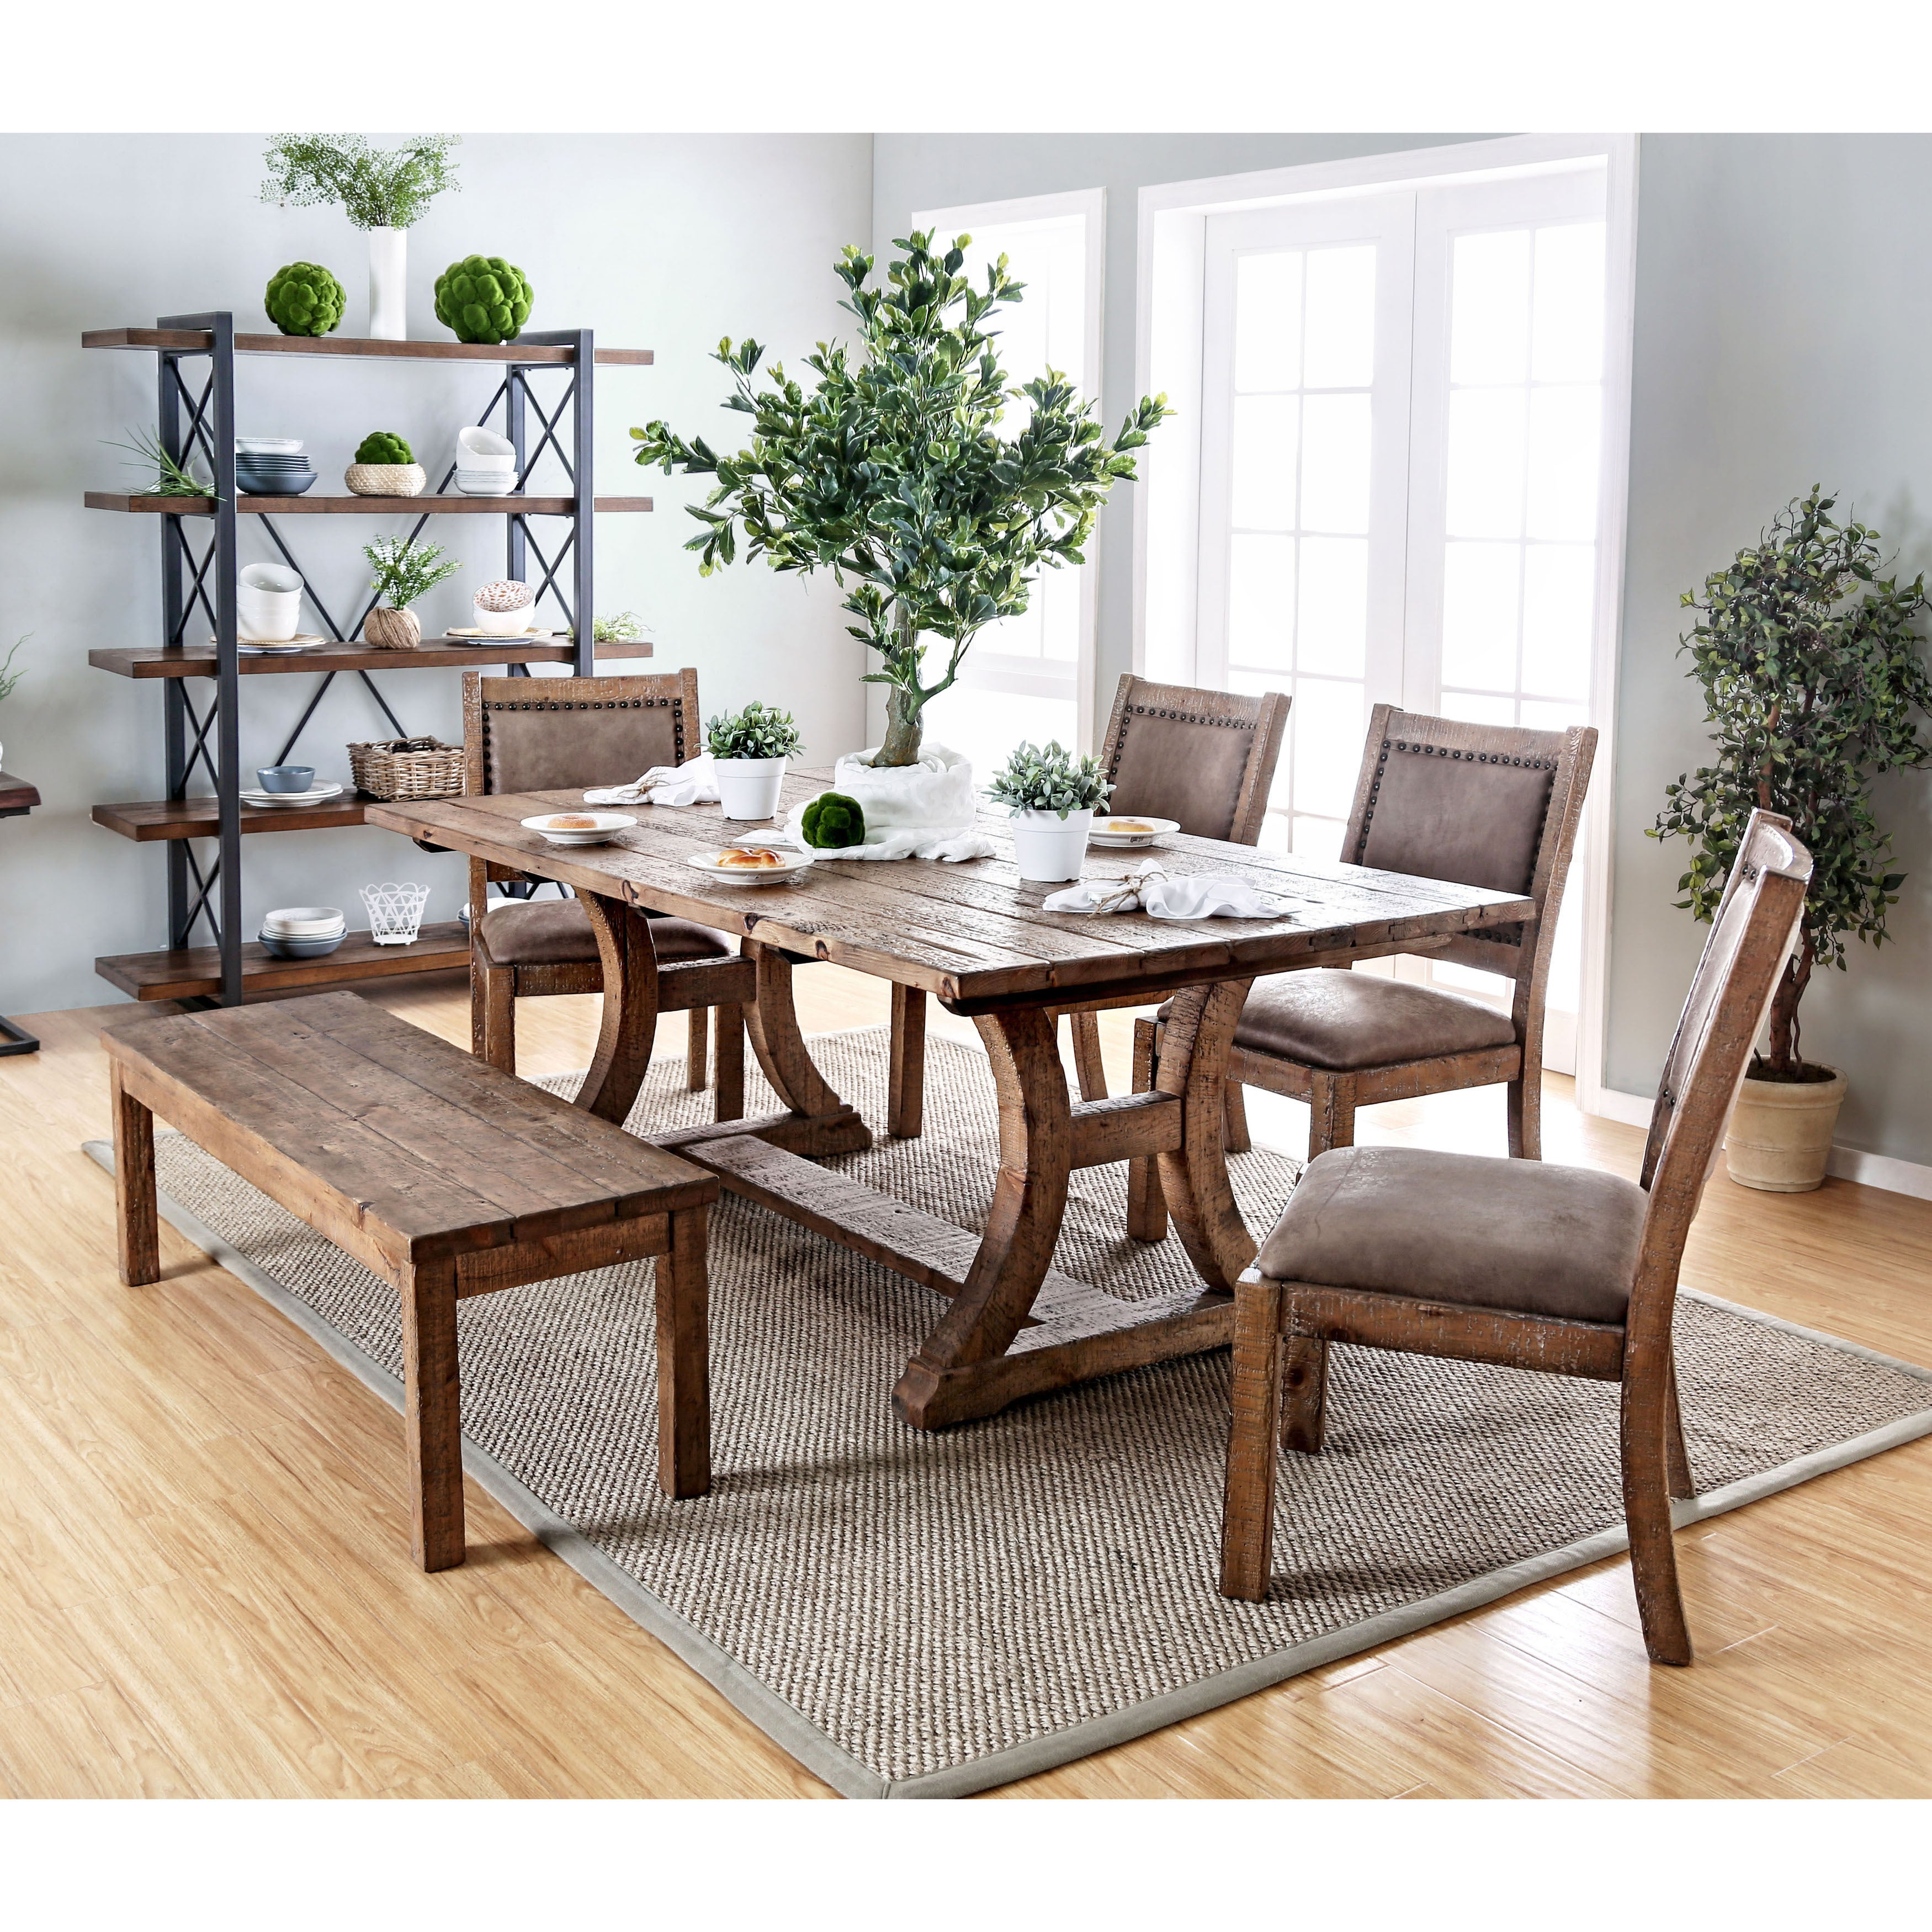 Shop Matthias Industrial Rustic Pine Dining Table By Foa Rustic